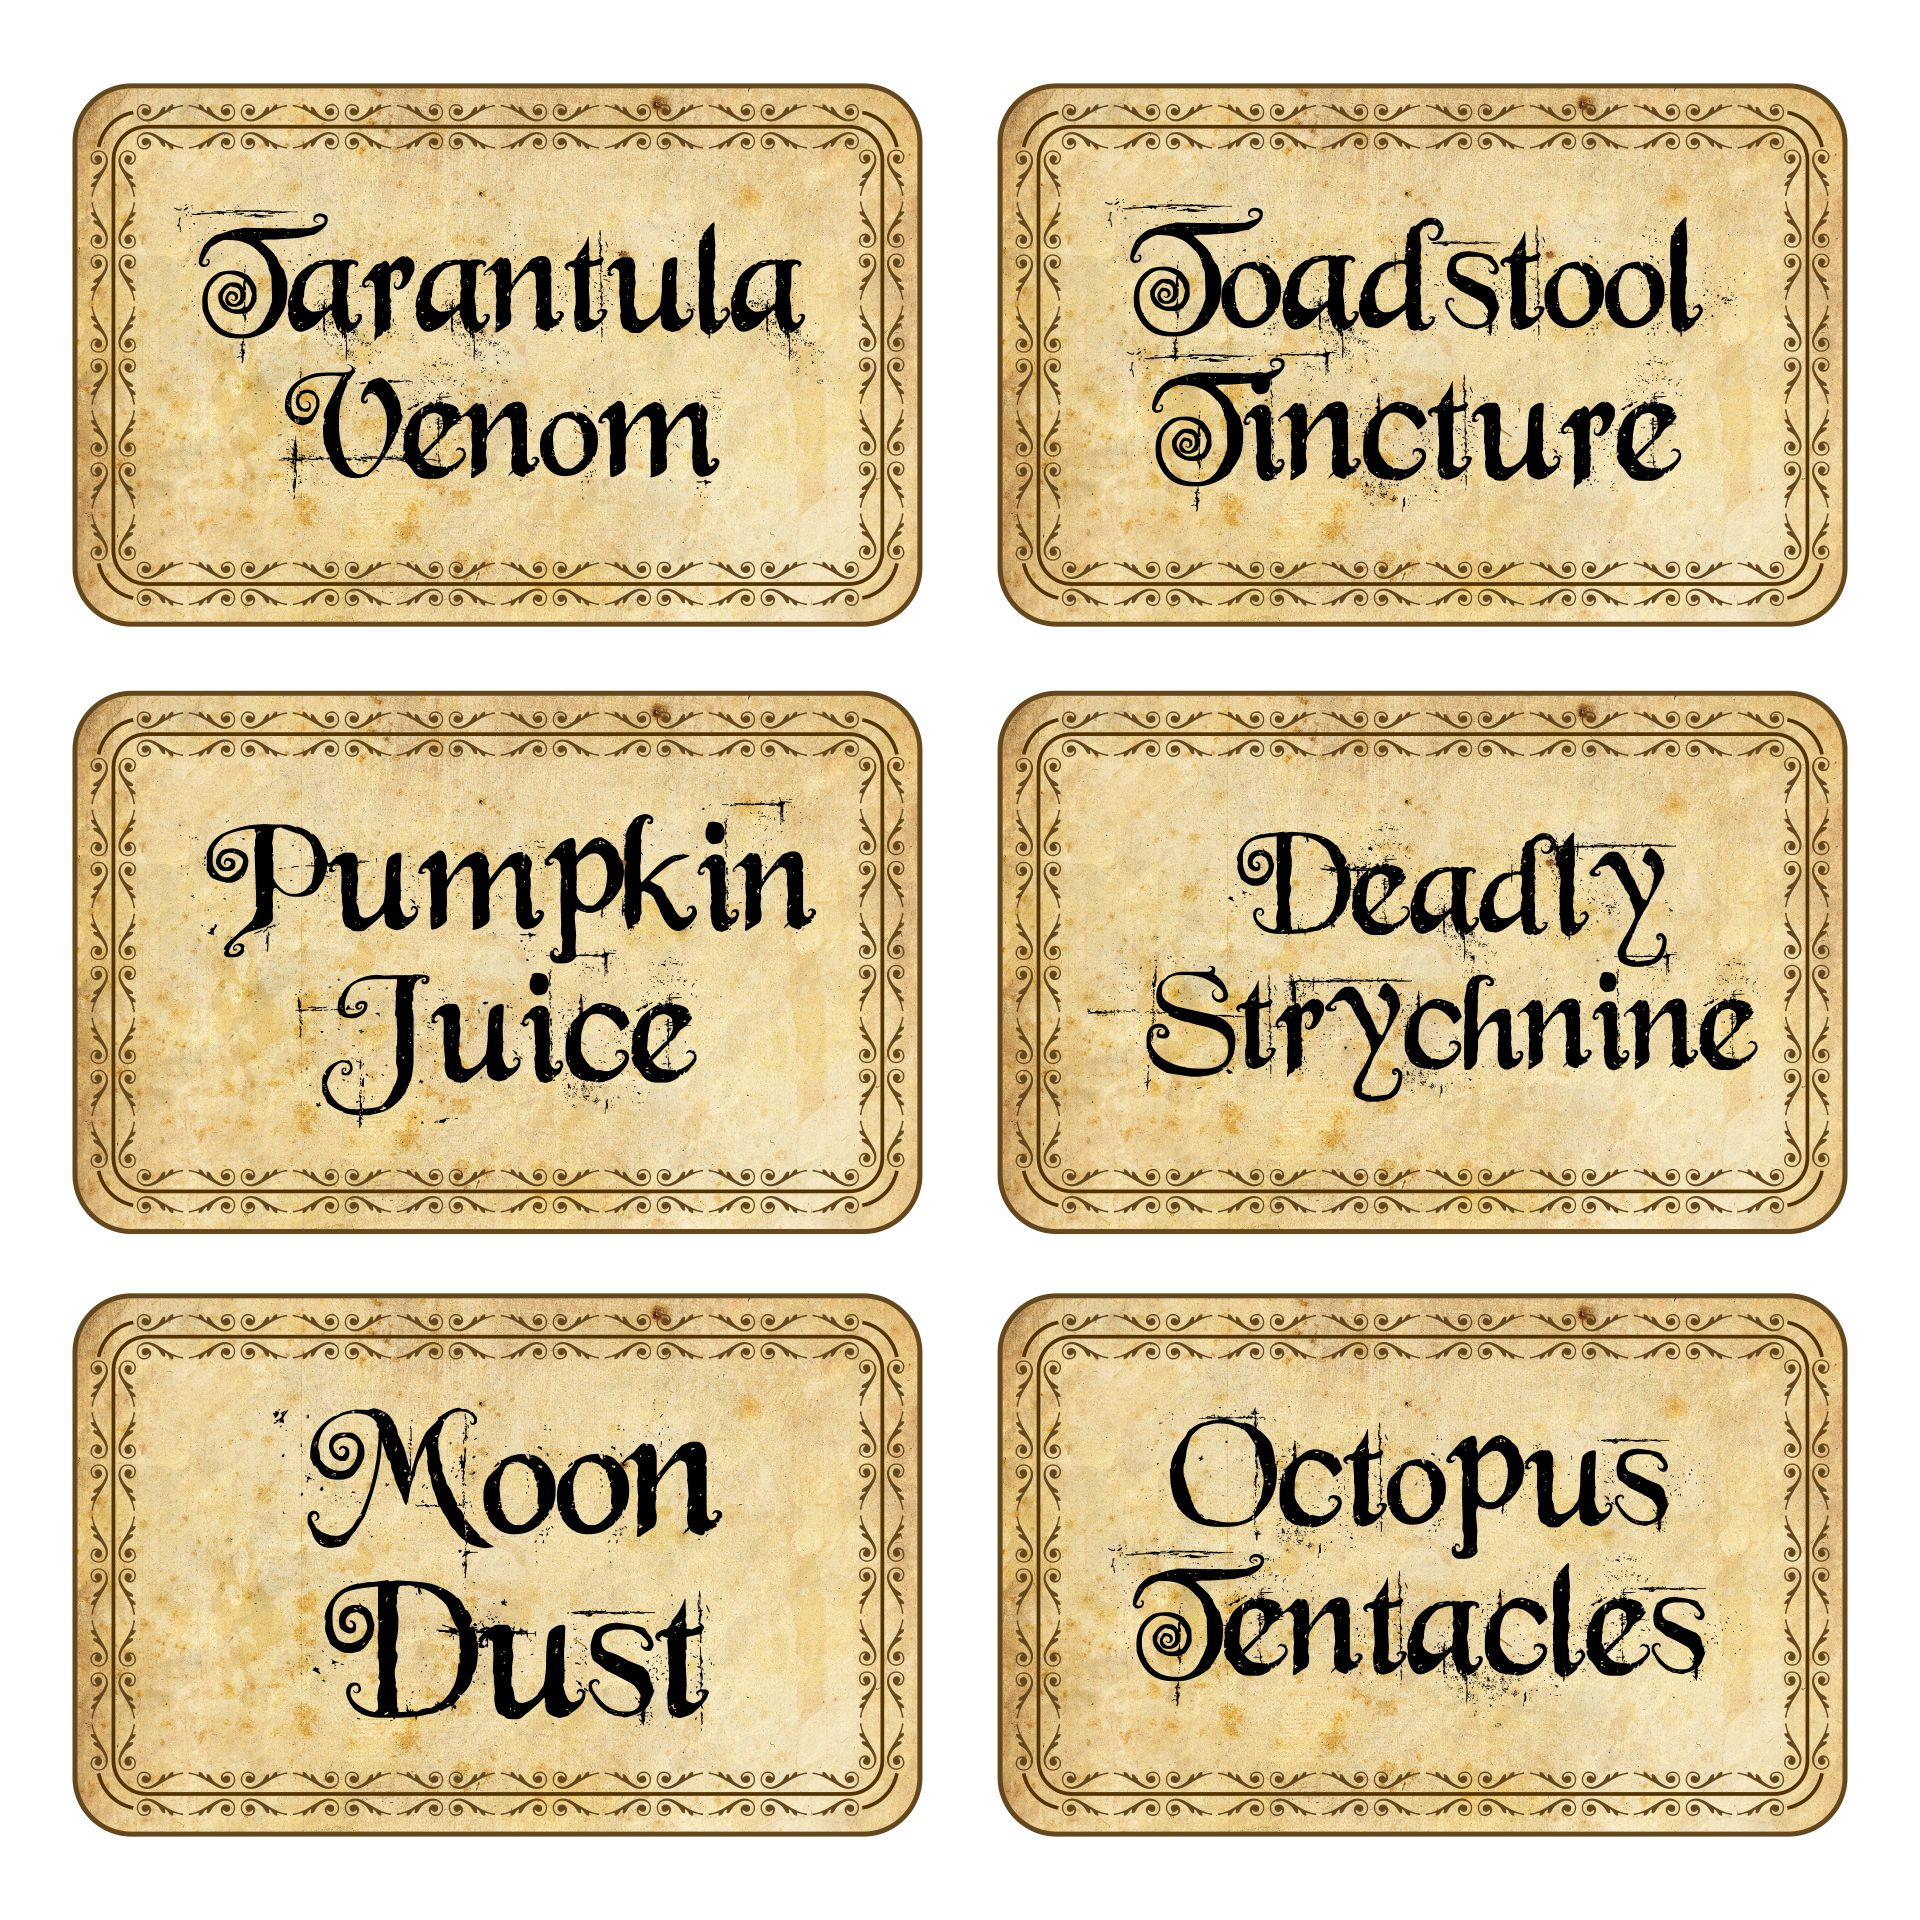 8 Images of Witches Potion Labels Free Printable